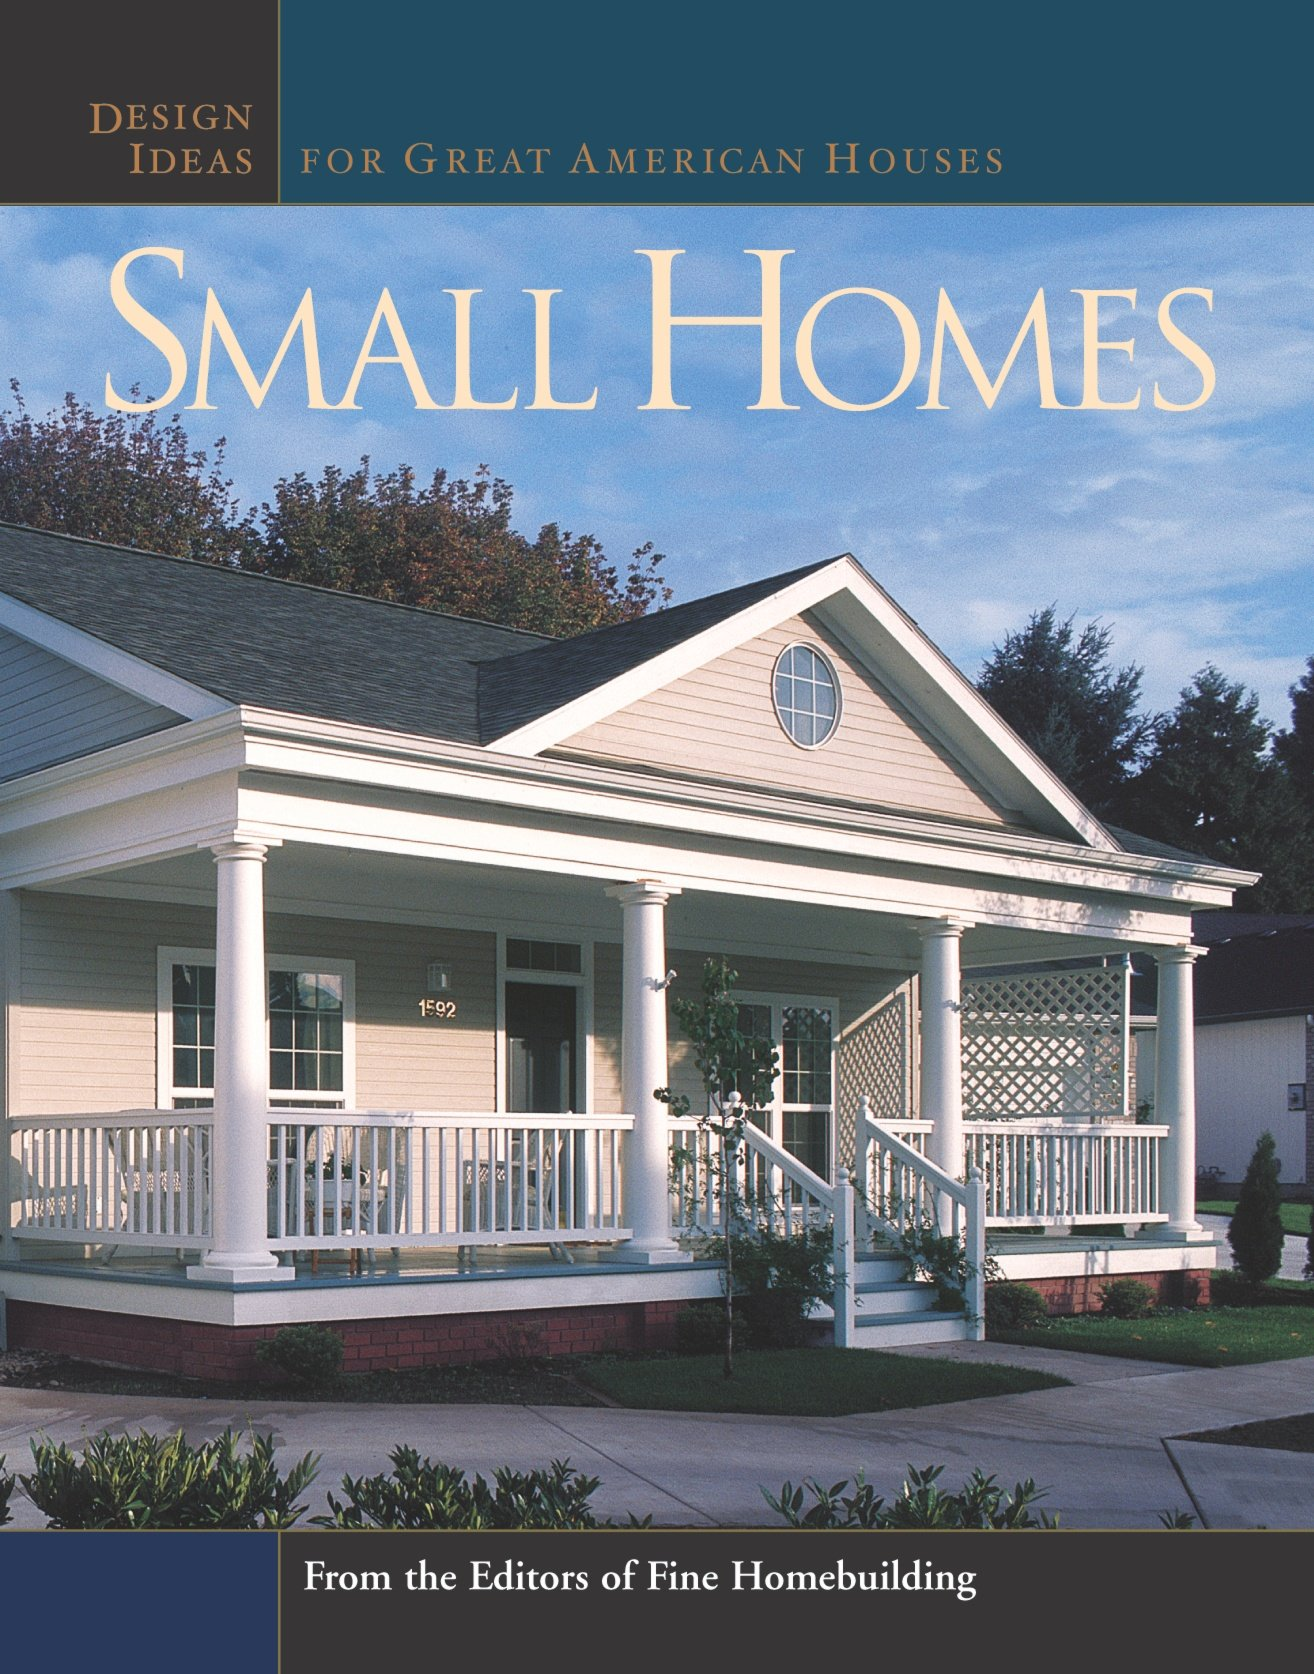 Small Homes: Design Ideas for Great American Houses Great Houses ...